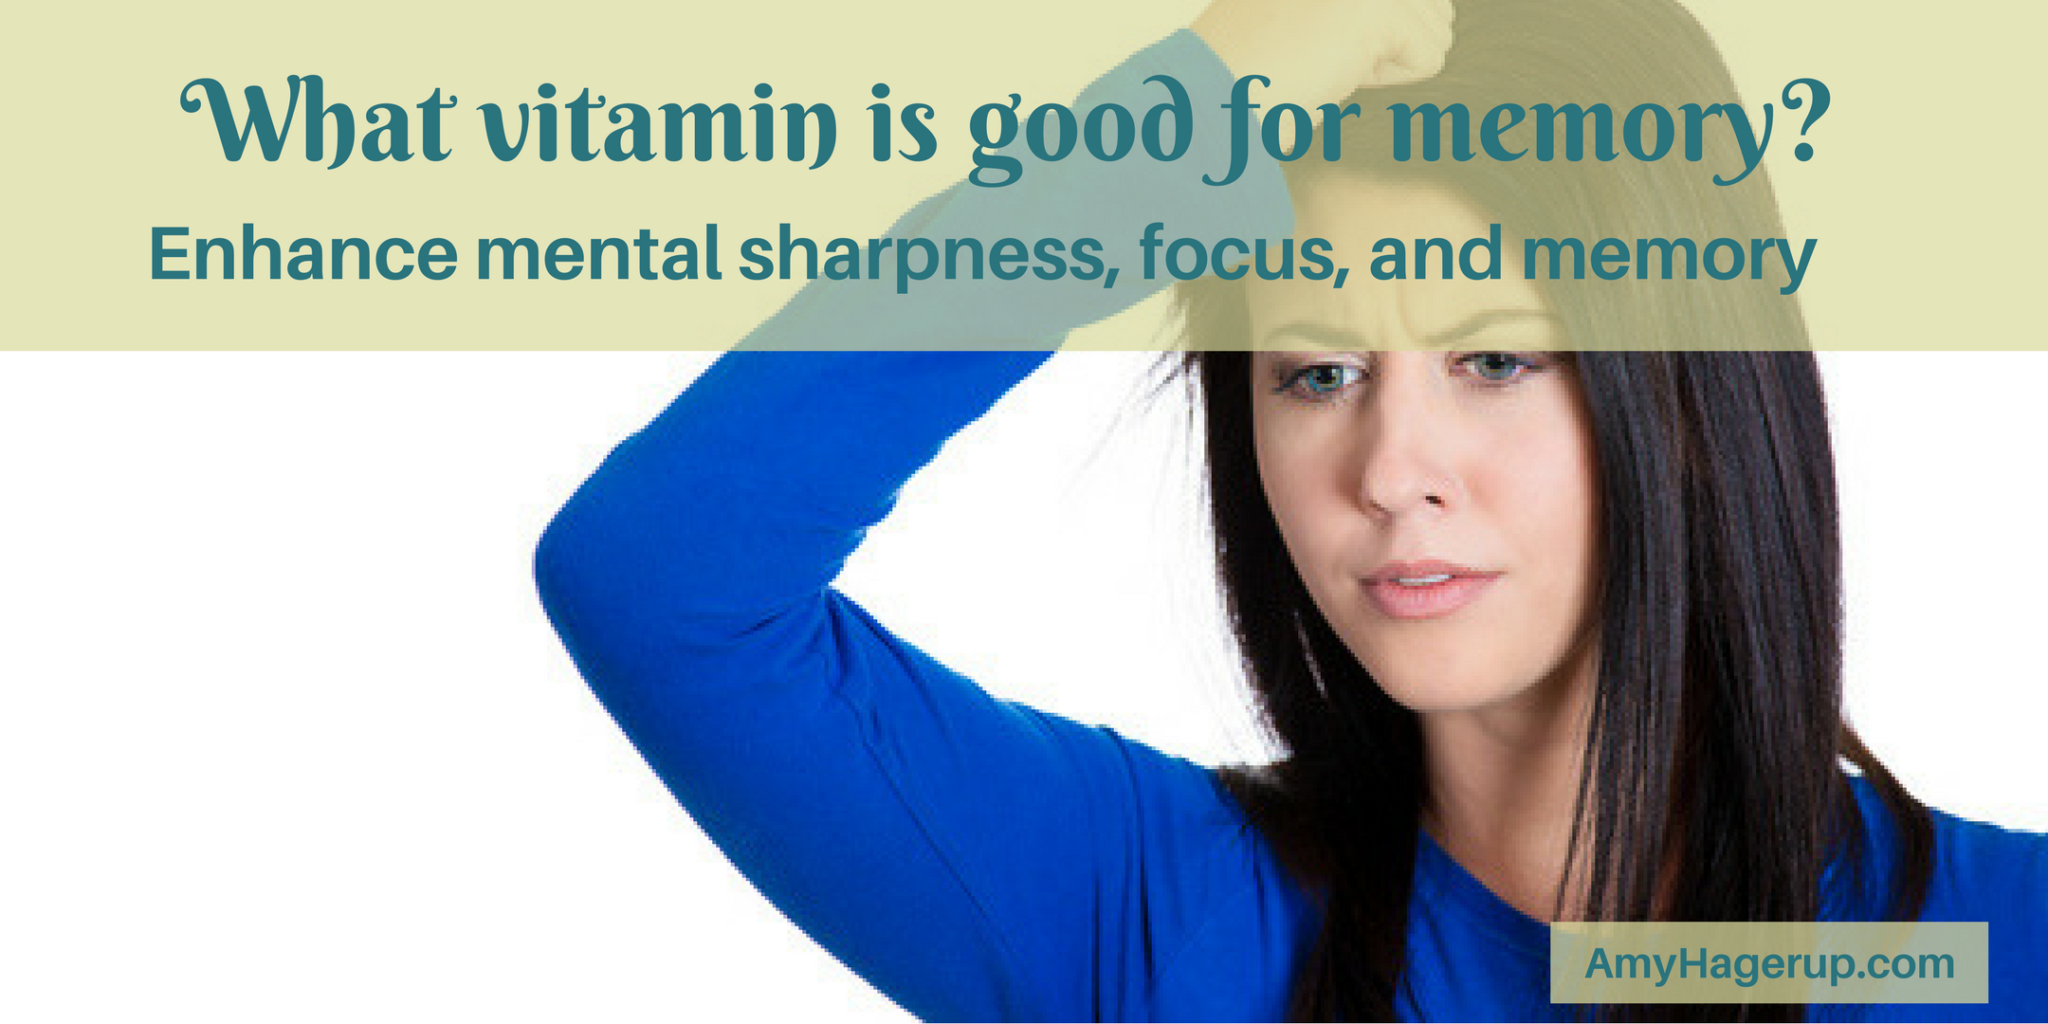 Check out to see which vitamin is good for memory.